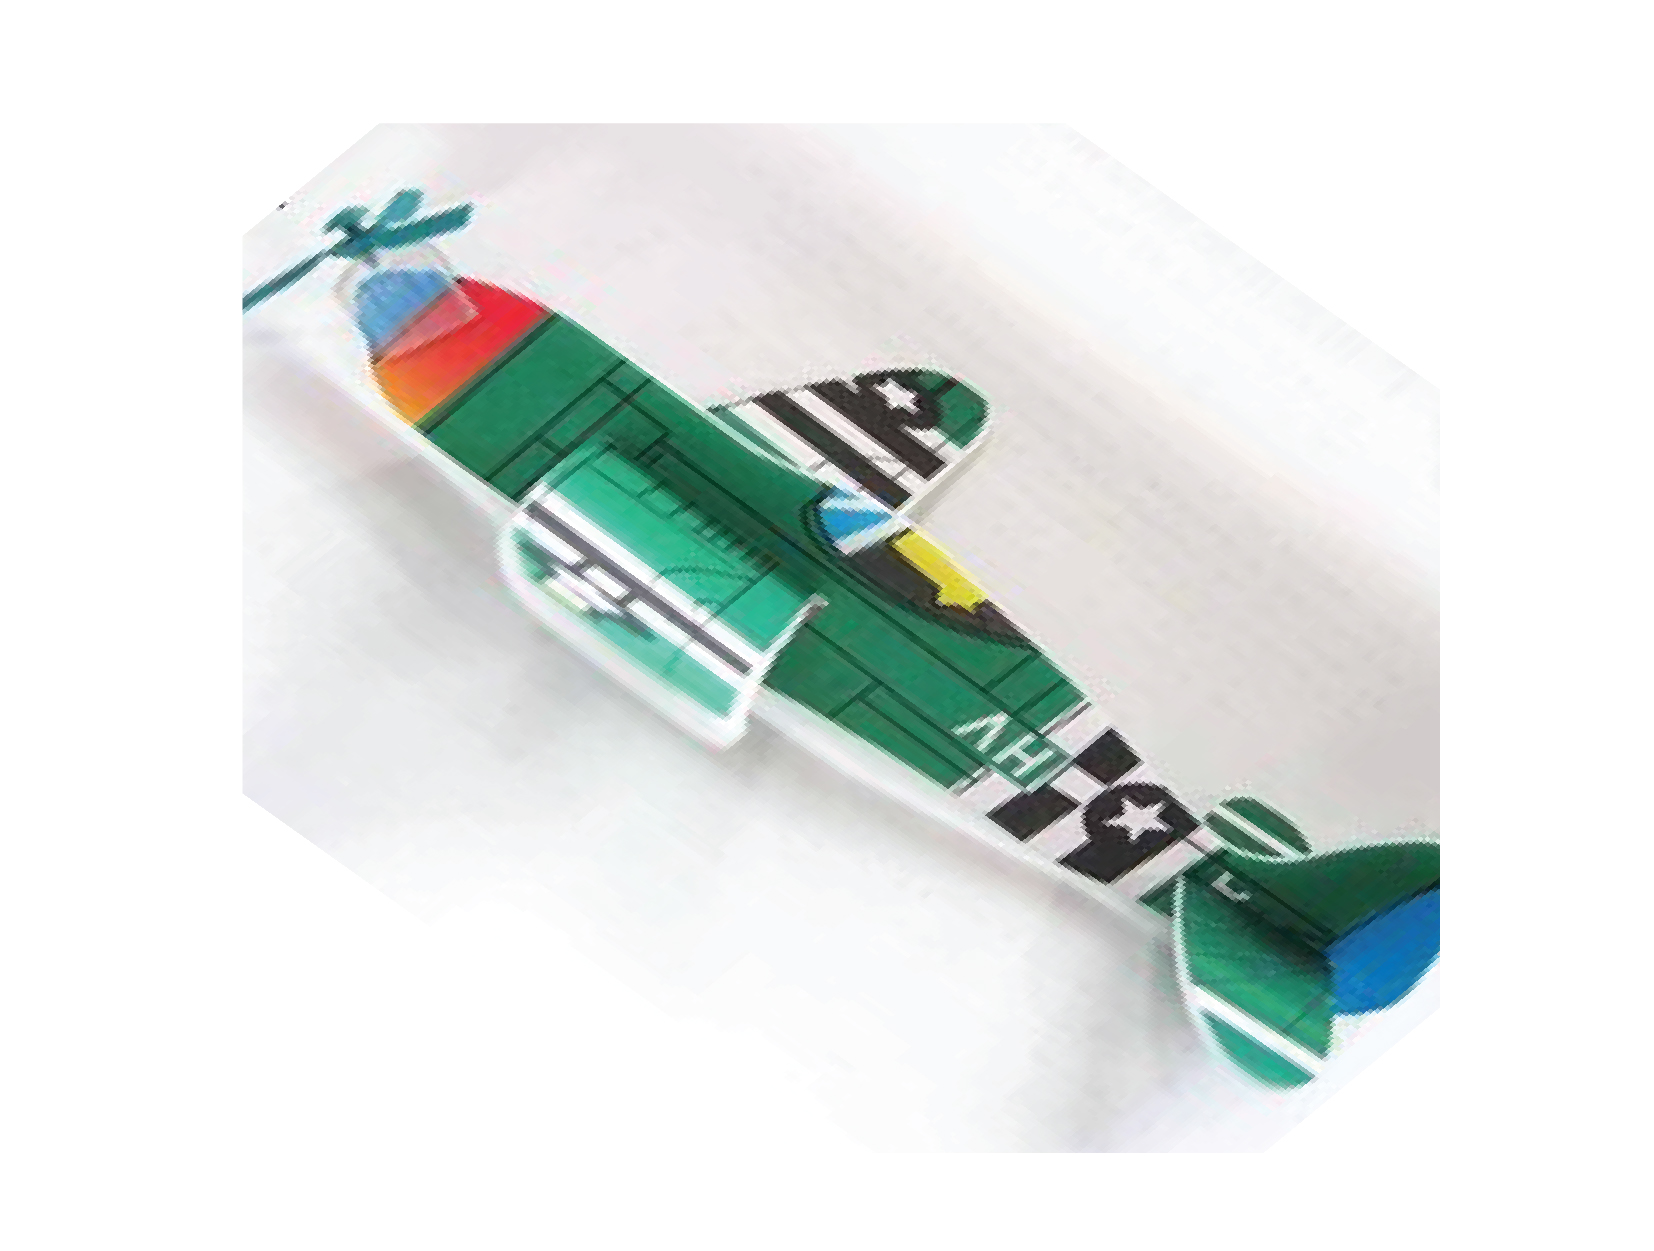 Project 3.2 Toy aeroplane